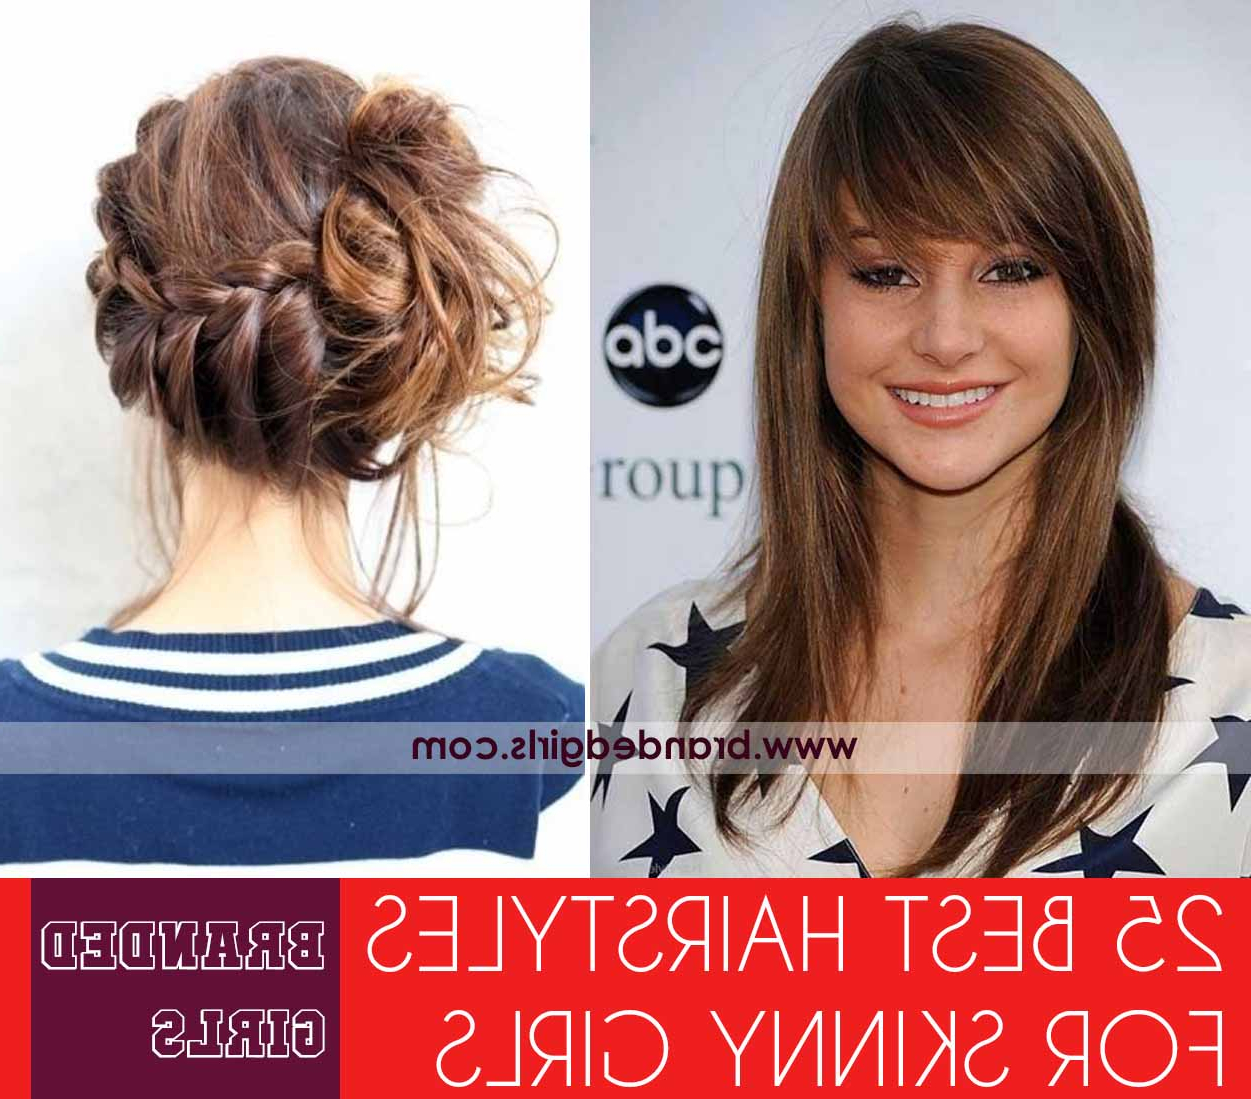 Skinny Girl Hair Looks – 25 Best Hairstyles For Skinny Girls Inside Short Haircuts For Tall Women (View 6 of 25)